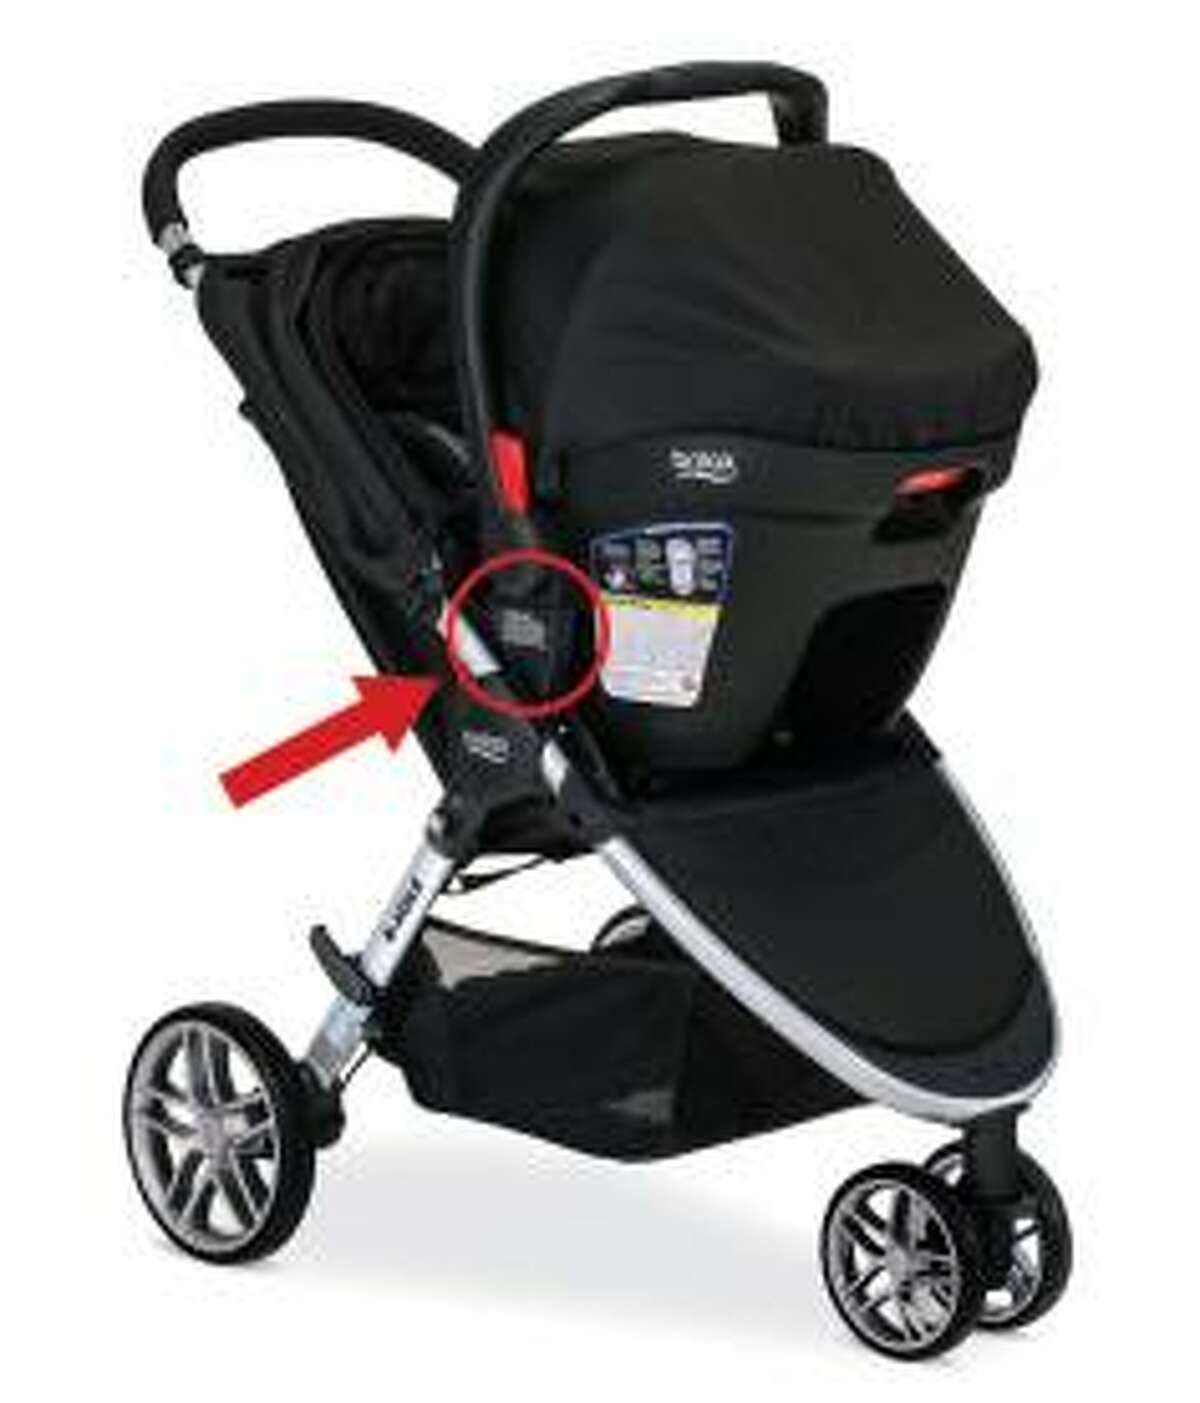 Product Name: Britax B-Agile and BOB Motion Strollers with Click & Go receivers Safety Concerns:A damaged receiver mount on the stroller can cause the car seat to disengage and fall unexpectedly, posing a fall hazard to infants in the car seat. Recall Date: Feb. 16, 2017 Source: CPSC